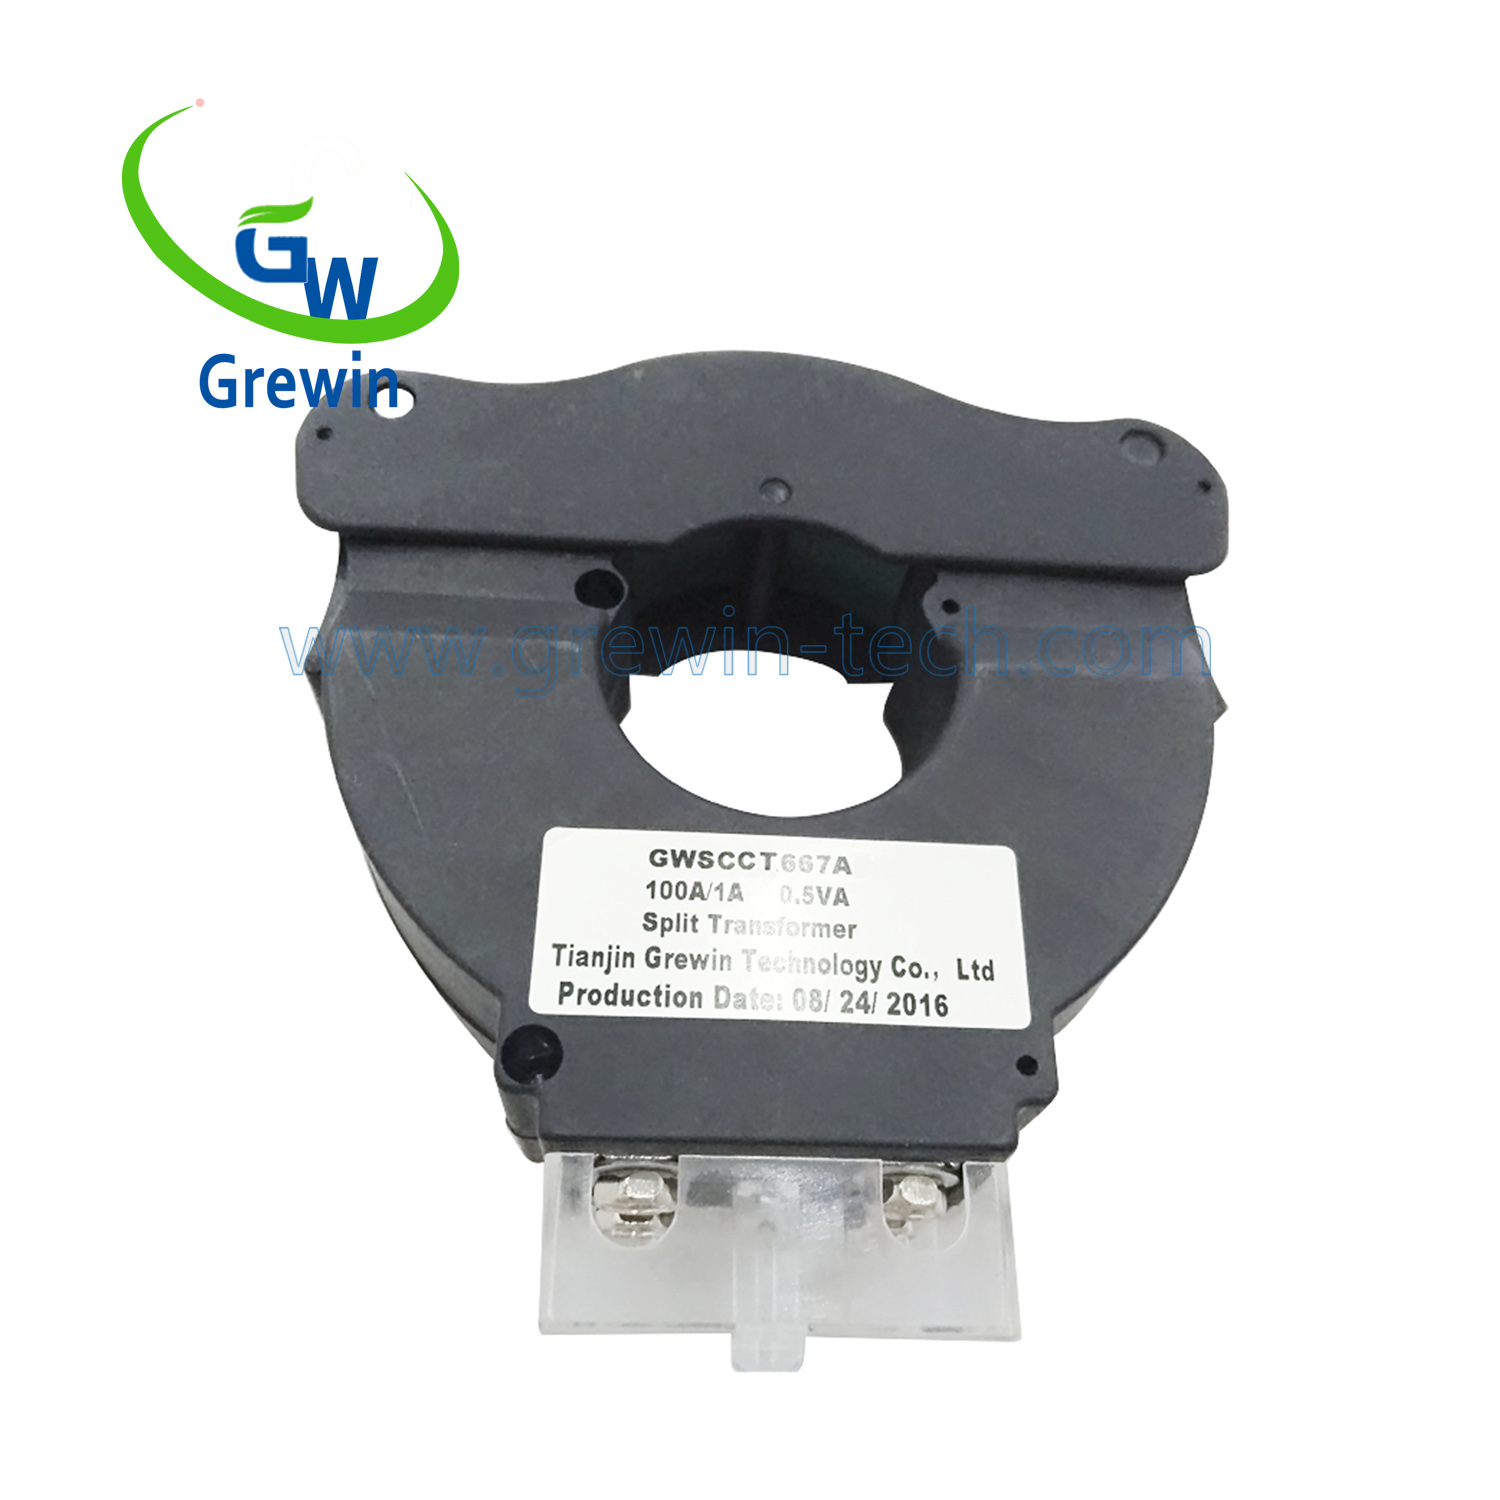 Grewin 50-400Hz Silicon steel split core current transformer 0.333v for energy monitoring device